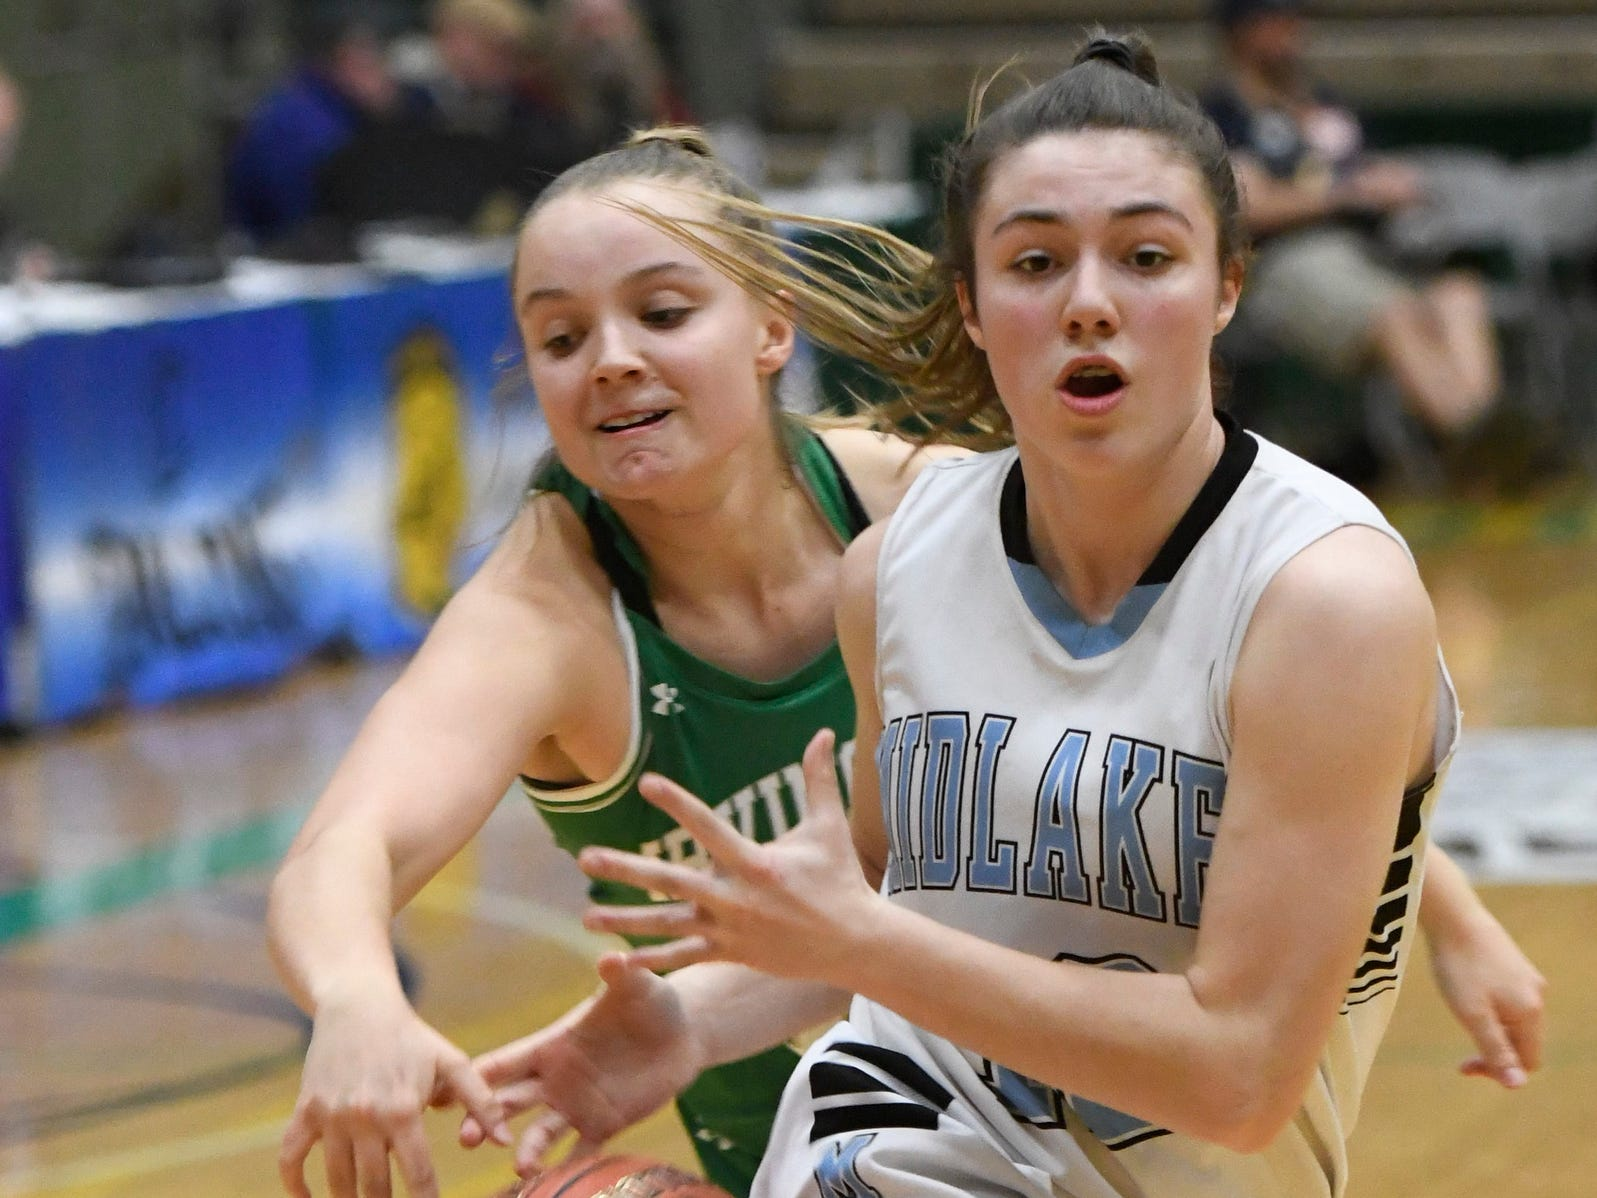 Midlakes' Alaina Forbes has the ball slapped away during the Class B State Championship at Hudson Valley Community College on March 16, 2019, in Troy, N.Y.